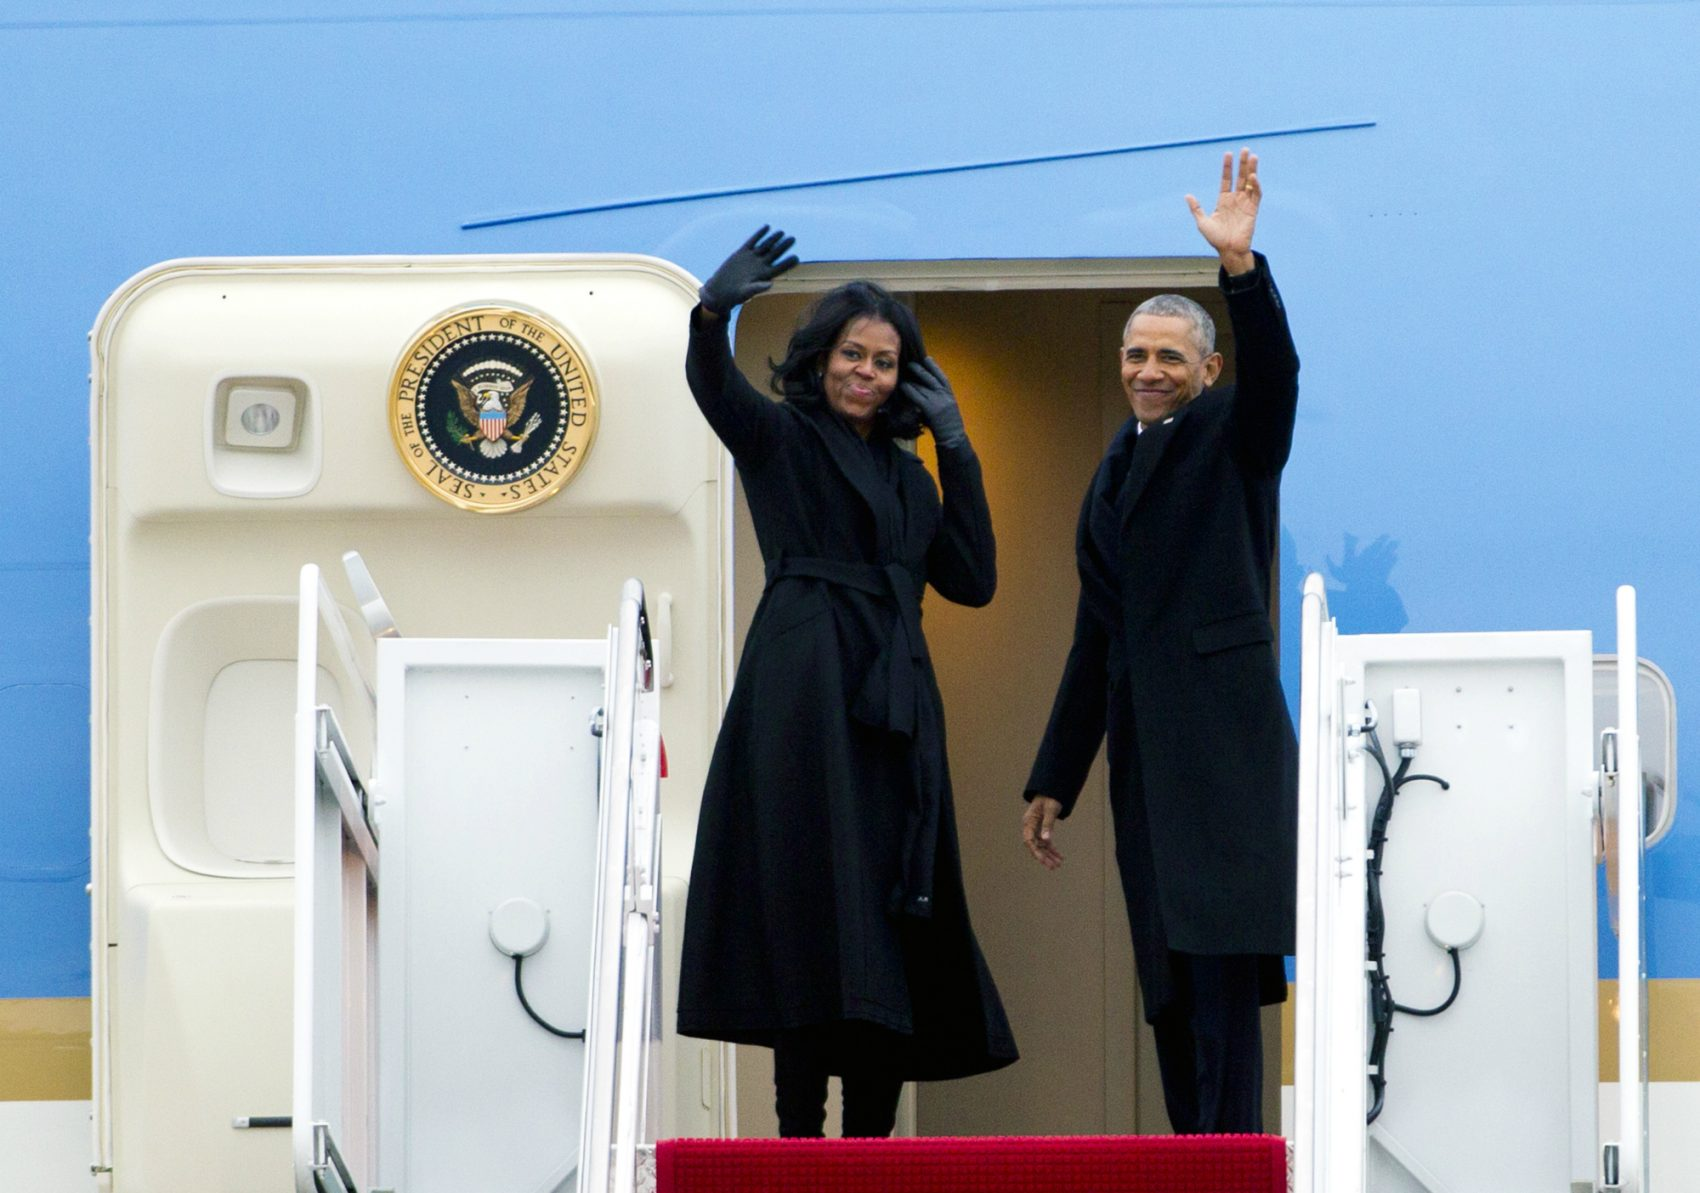 The First Lady's platform, writes Joanna Weiss, has become increasingly powerful, a way to move markets, change minds, and set a standard for a nation full of girls. Pictured: President Barack Obama and First Lady Michelle Obama wave from Air Force One at Andrews Air Force Base, Md., Tuesday, Jan. 10, 2017.  (Jose Luis Magana/AP)